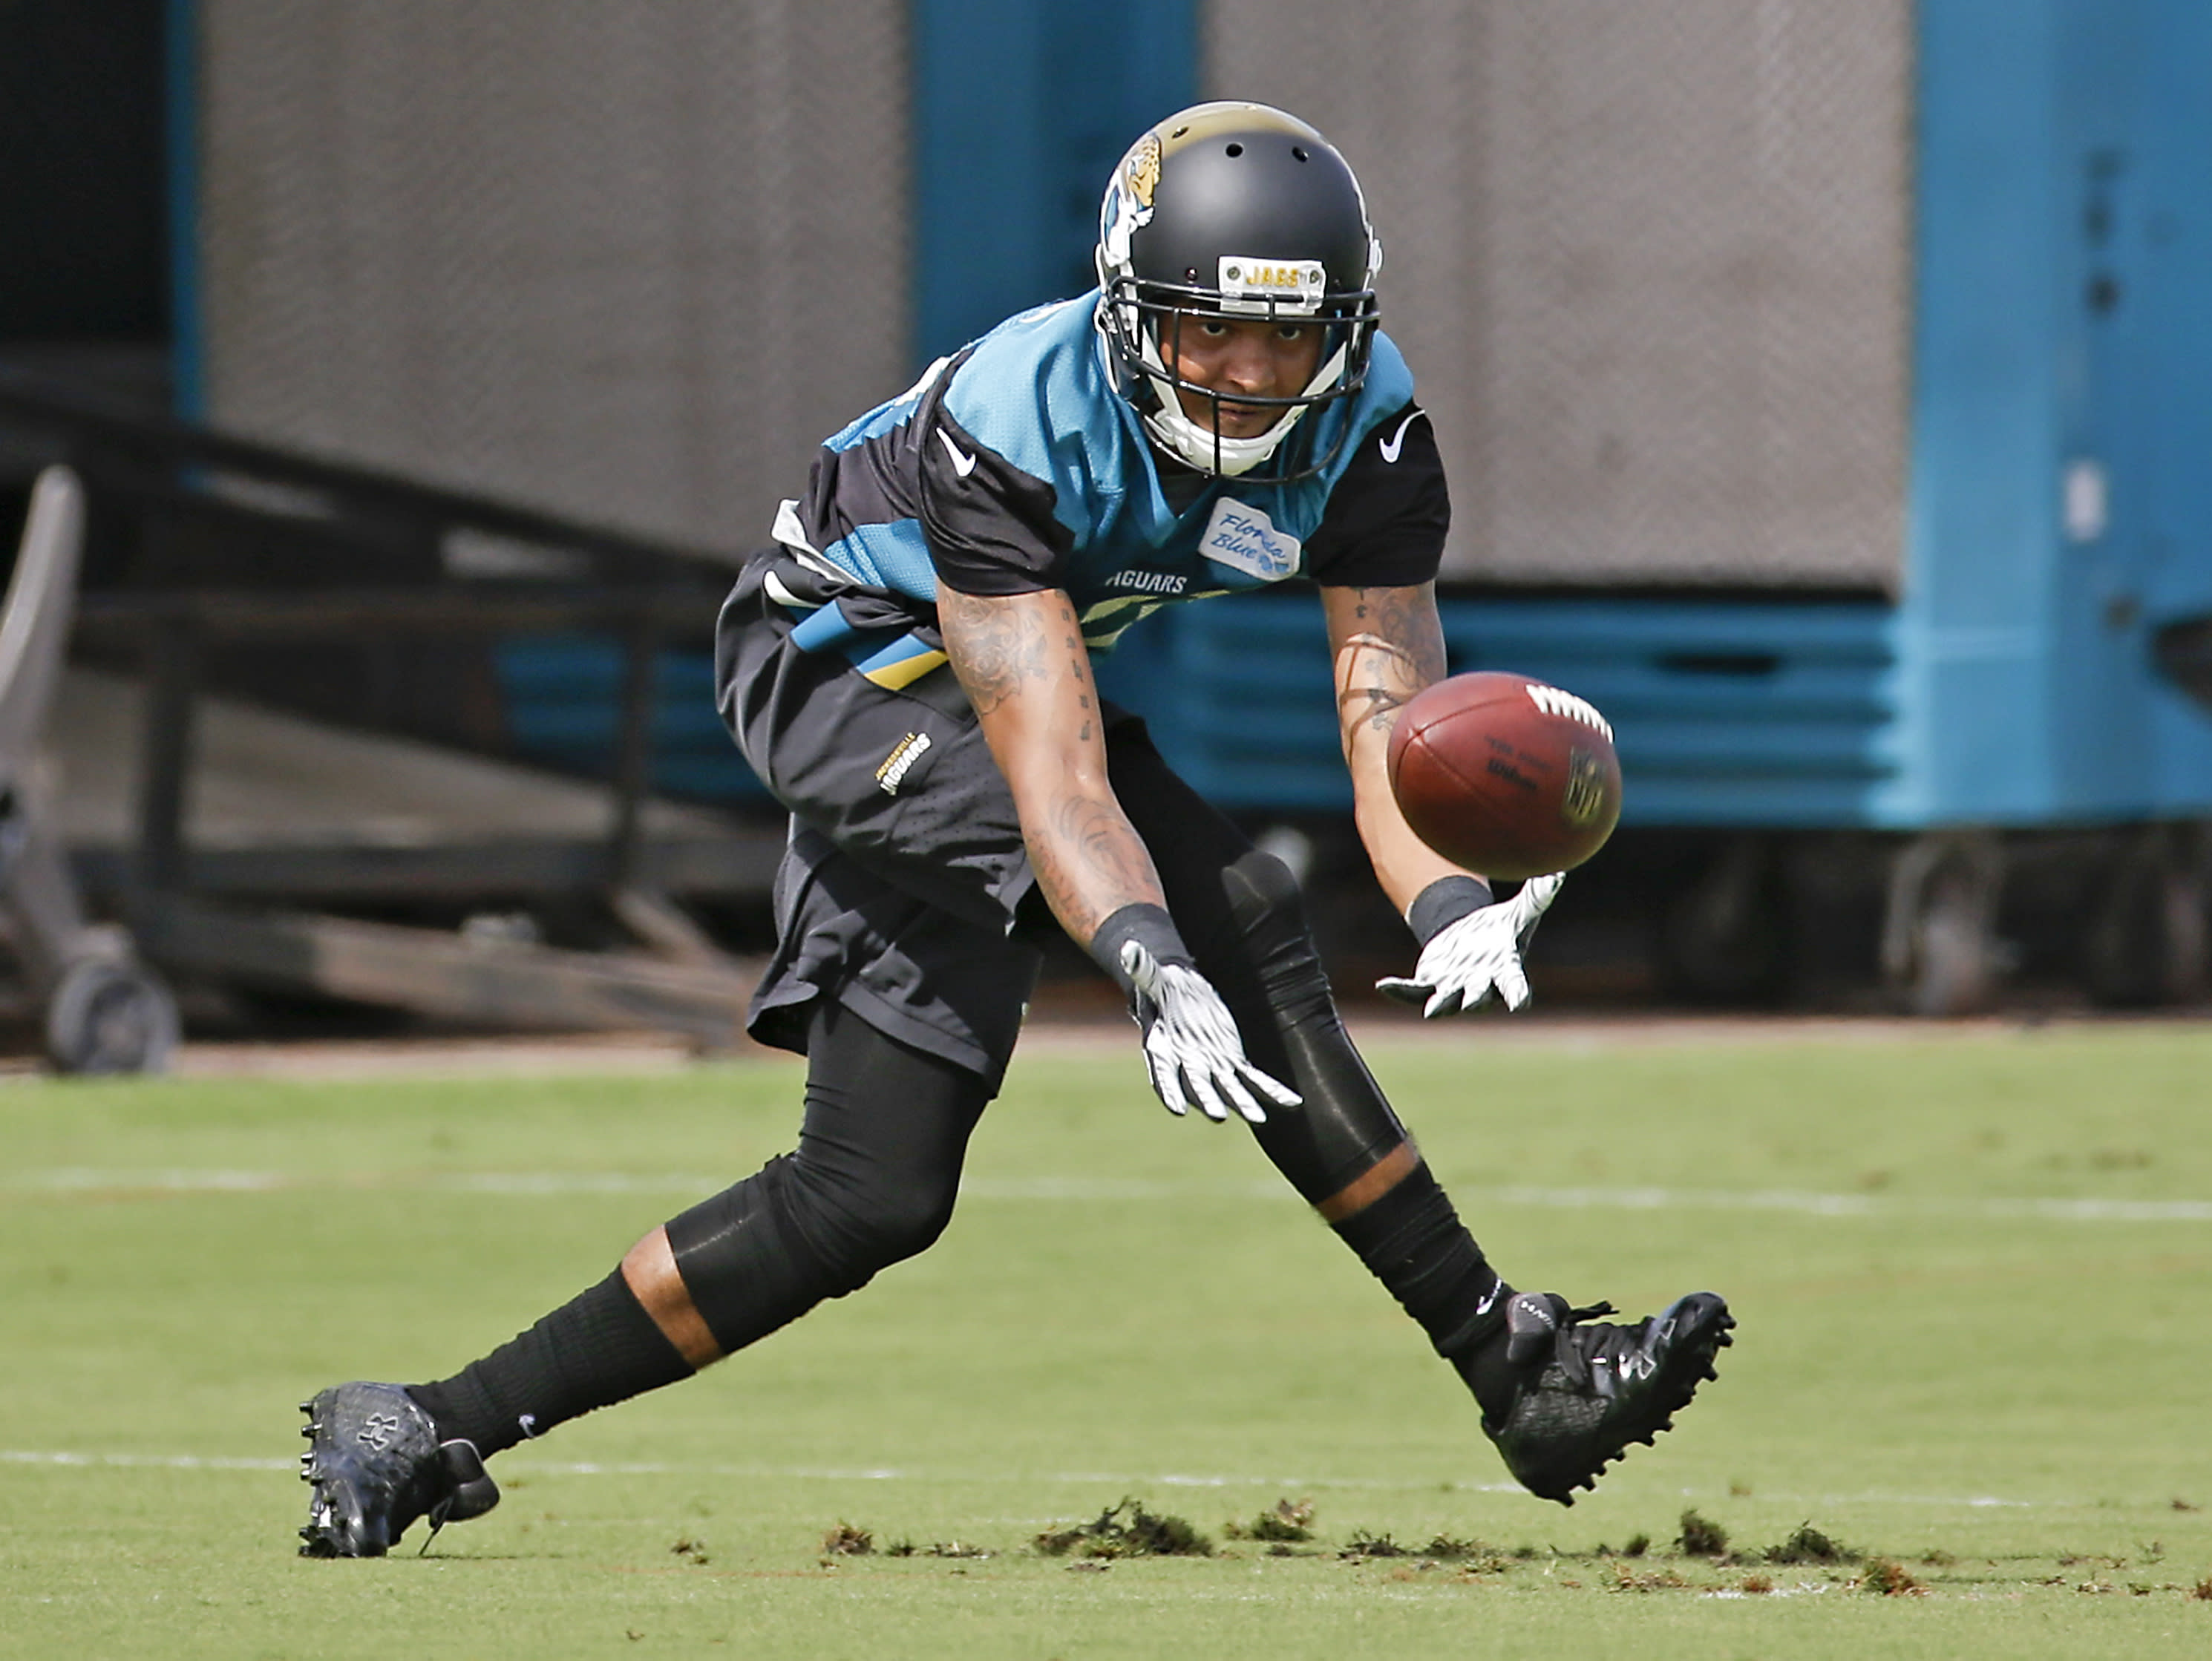 No show: Jaguars' Clemons skips start of voluntary OTAs